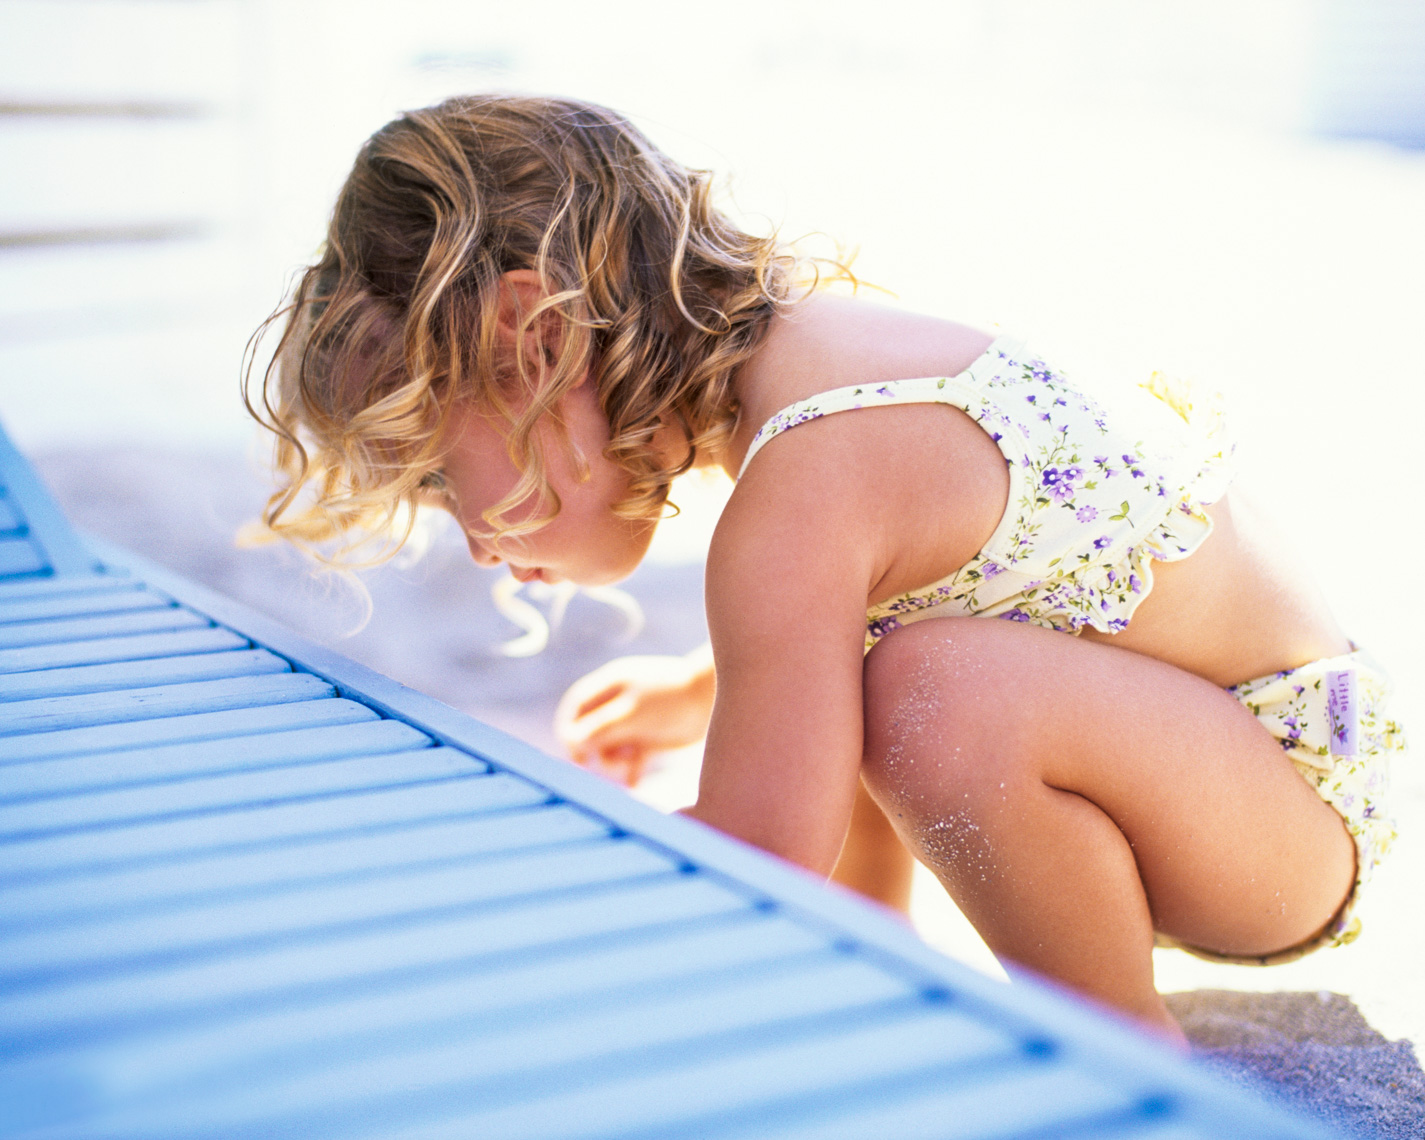 Toddler playing on the beach | Tosca Radigonda Photography